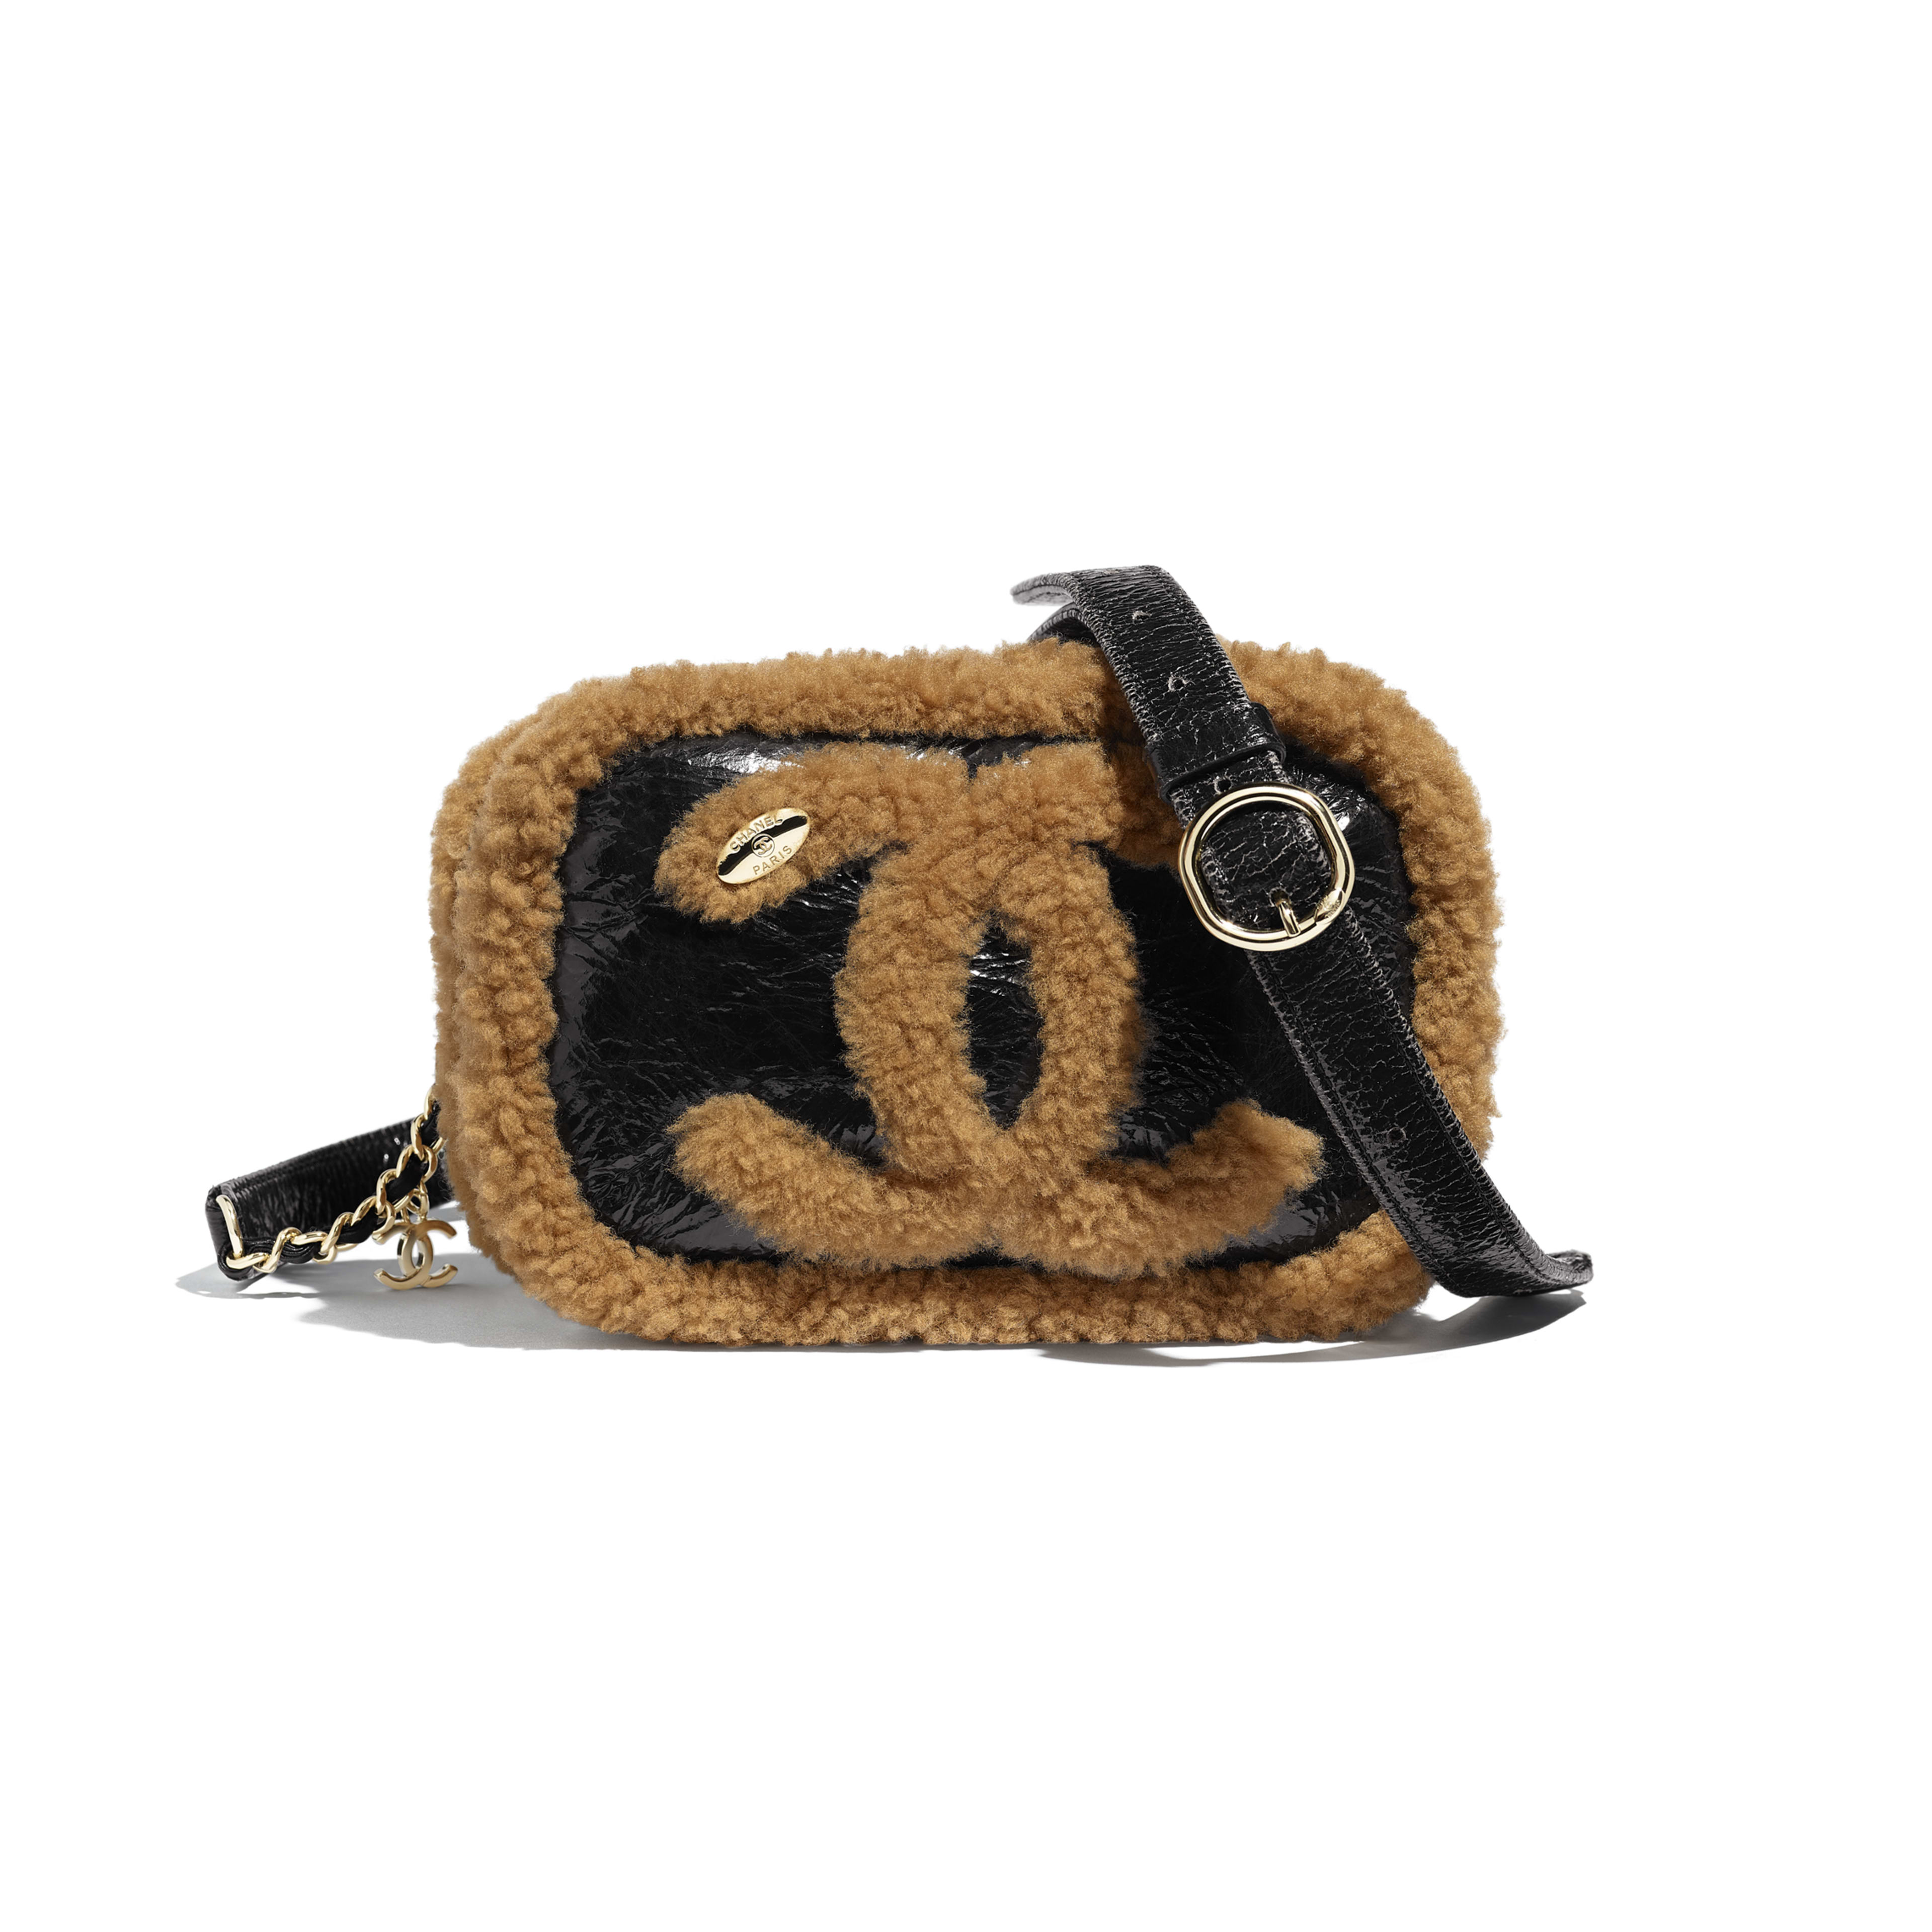 Waist Bag - Black & Brown - Shiny Crumpled Sheepskin, Shearling Sheepskin & Gold-Tone Metal - Default view - see full sized version